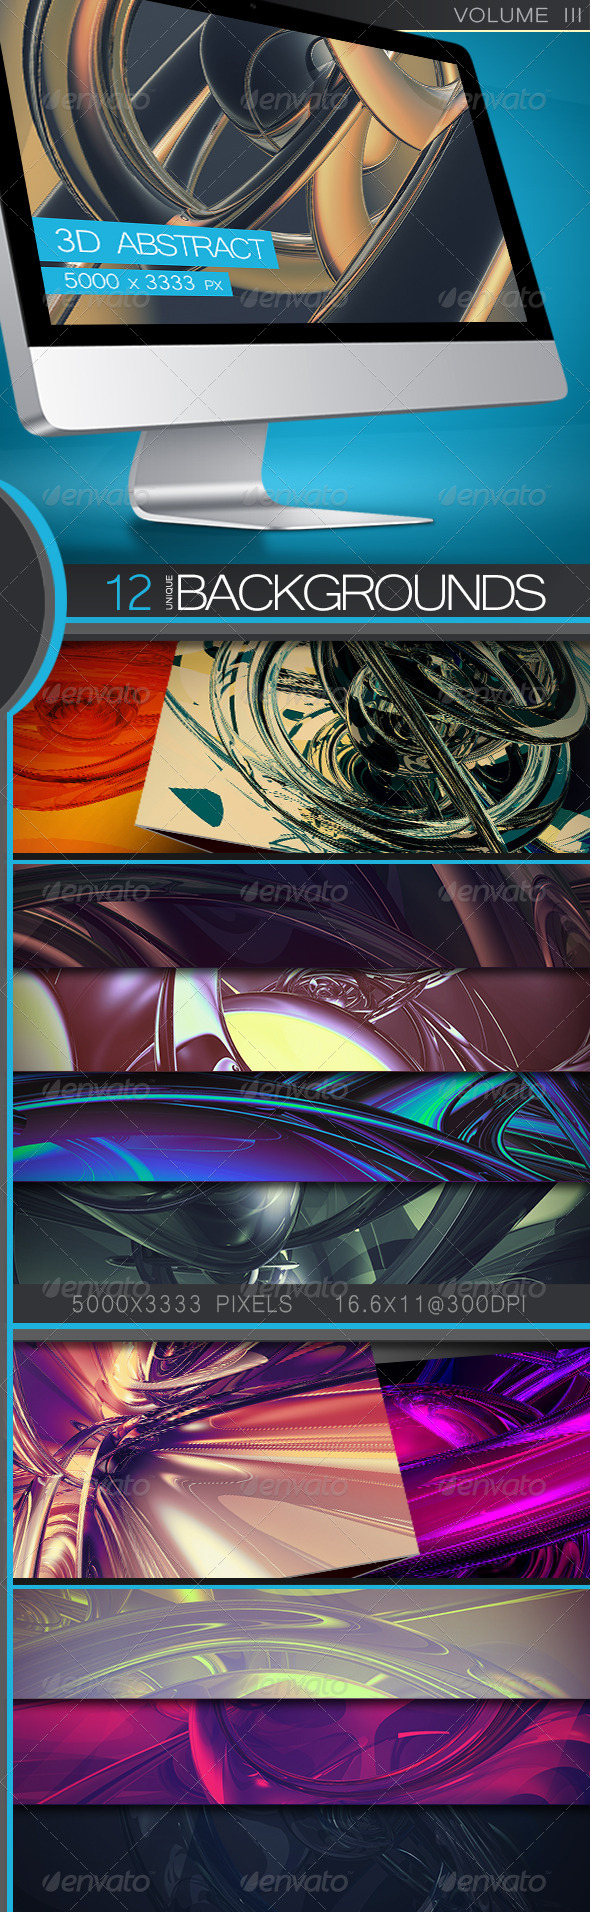 GraphicRiver 3D Abstract Backgrounds Volume 3 5338264